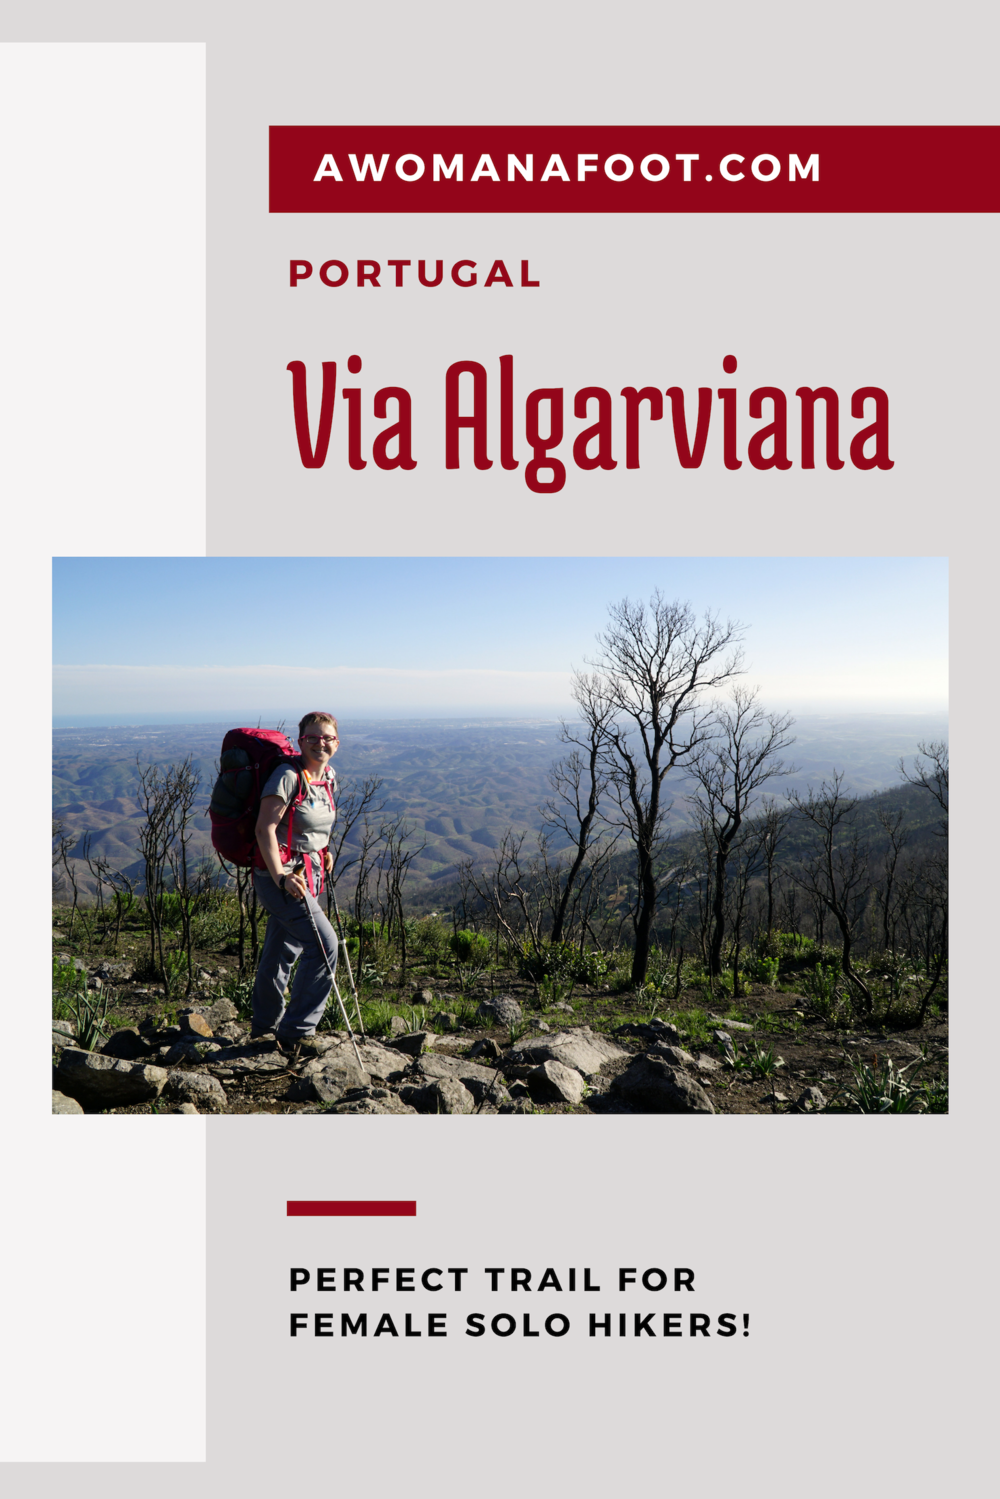 Why Via Algarviana? If you are looking for the perfect long-distance trail for female solo hikers, Via Algarviana in Portugal might be just the ideal destination! Learn more @AWOMANAFOOT.COM | Hiking trails in Europe | Female Solo Hikers | Long-distance trails | Hiking in Portugal | Women Hikers | #ViaAlgarviana #Portugal #Hiking #Camping #BestDestinations #EuropeanTrails #Algarve #Outdoors #Backpacking